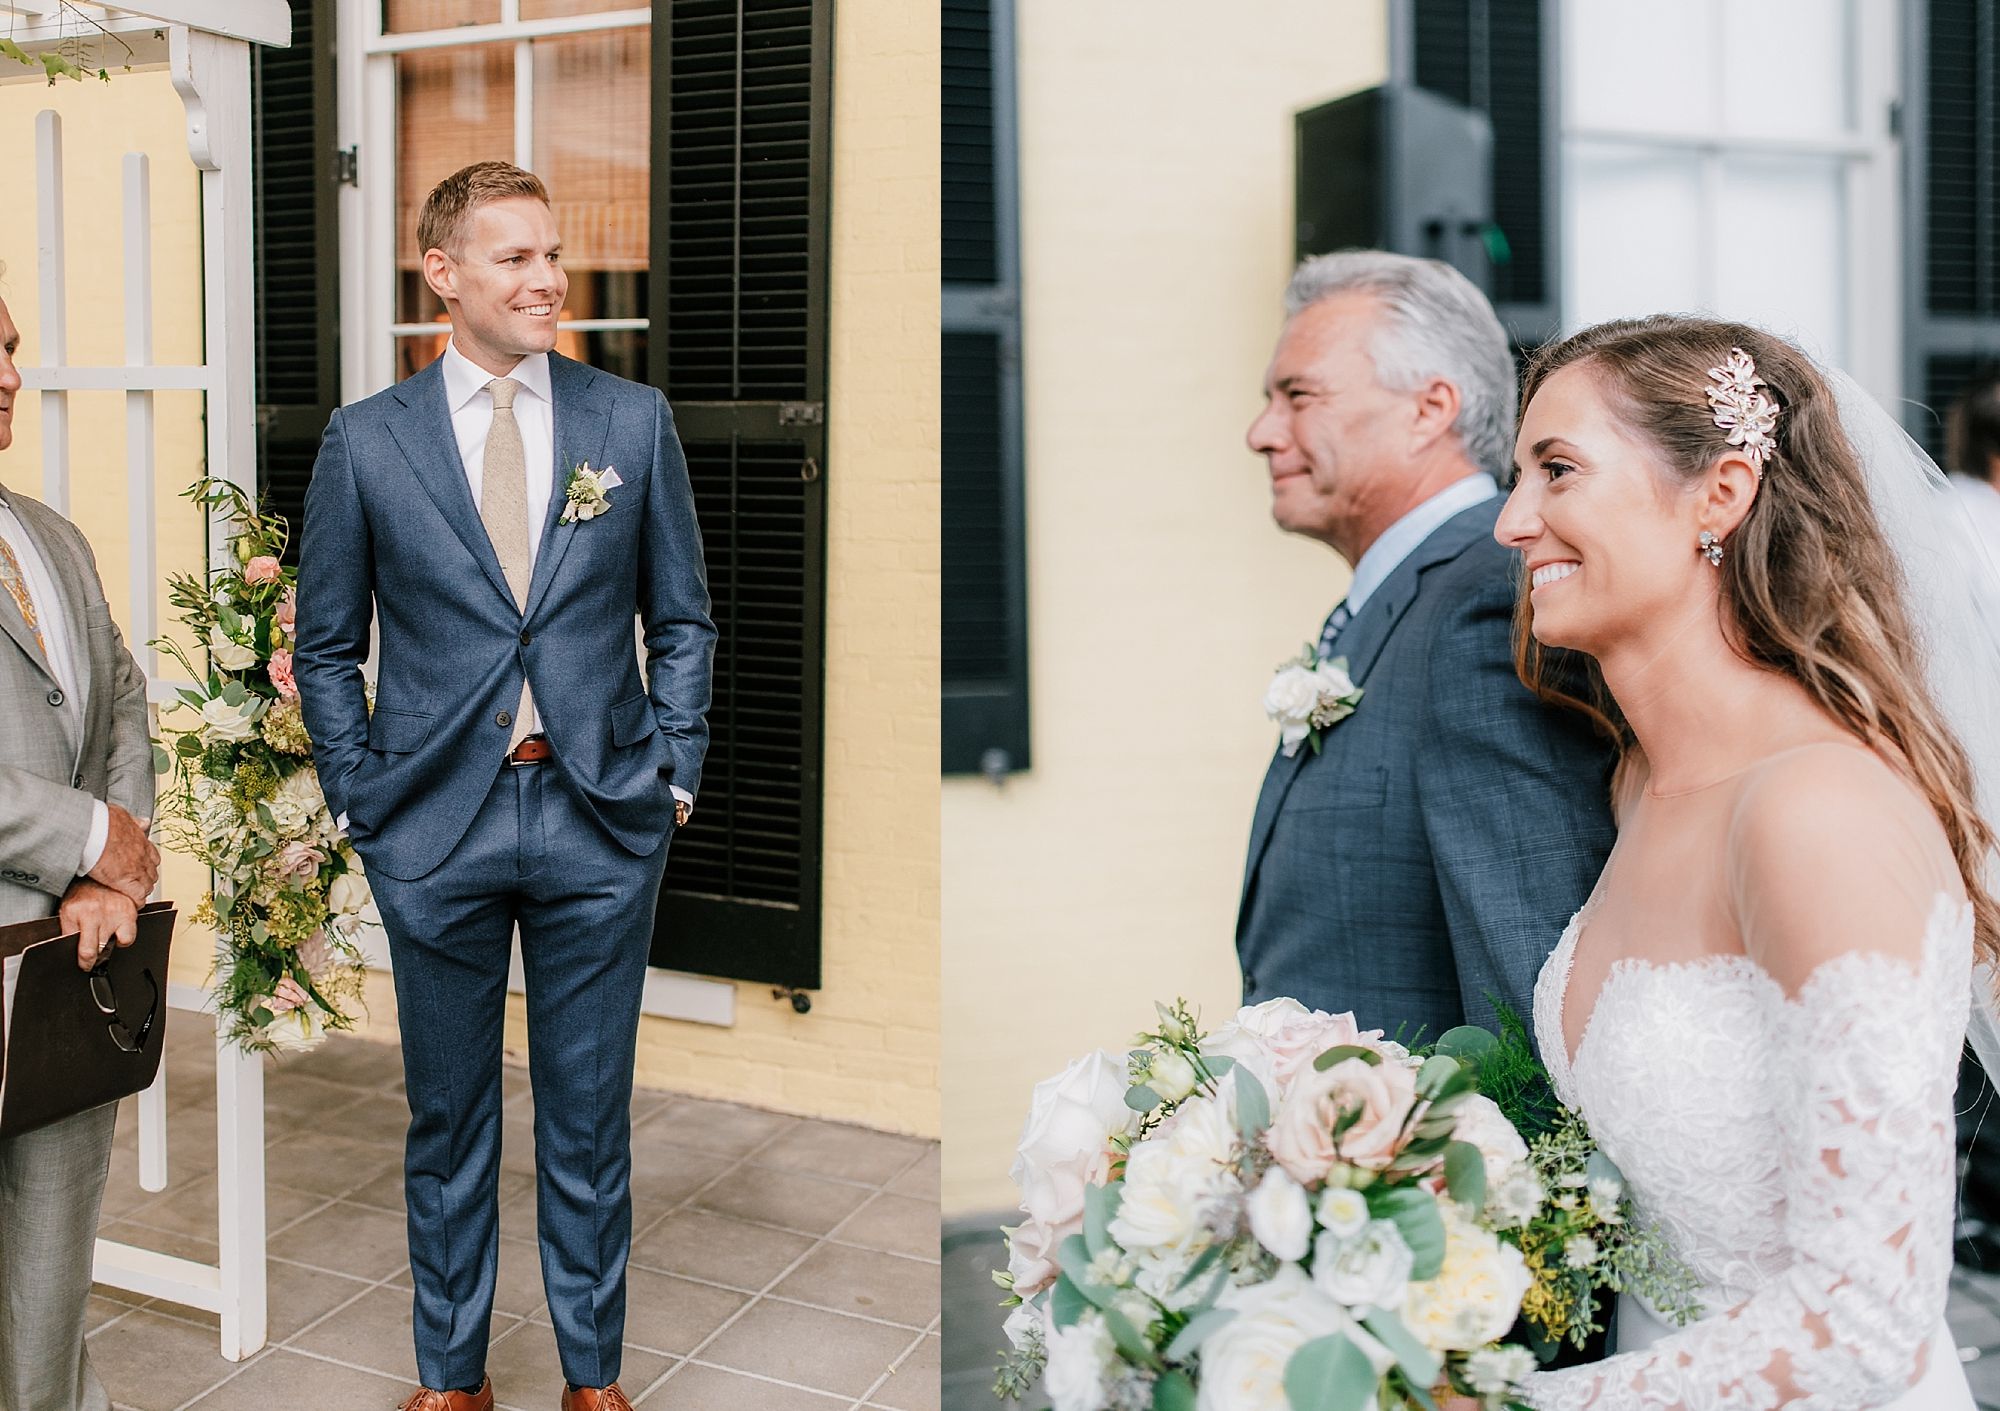 Intimate and Joyful Wedding Photography in Cape May NJ by Magdalena Studios 0033 4